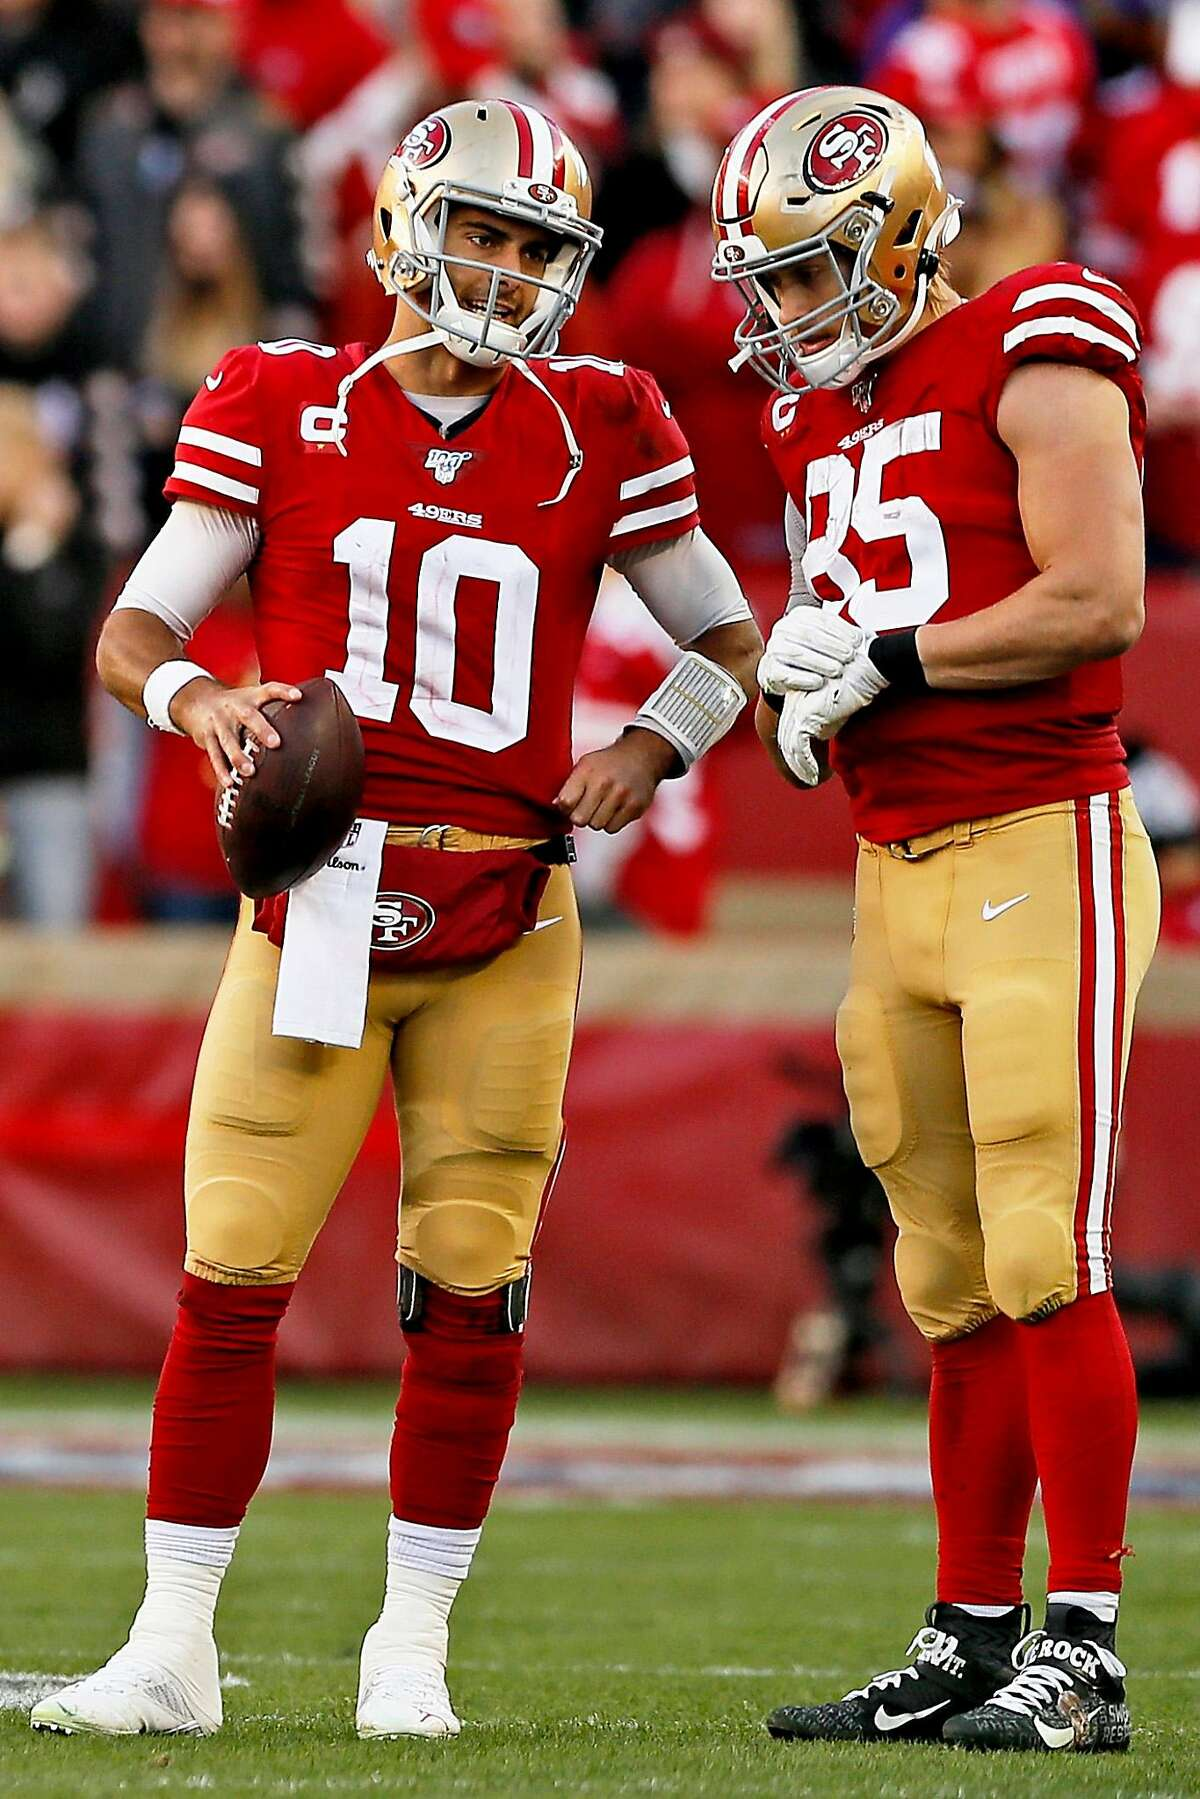 San Francisco 49ers quarterback Jimmy Garoppolo (10) talks to 49ers tight end George Kittle (85) as Garoppolo warms up with 49ers wide receiver Kendrick Bourne (84) in the second half of an NFC Divisional Round playoff game against the Minnesota Vikings, Saturday, Jan. 11, 2020, in Santa Clara, Calif. The 49ers won 27-10.